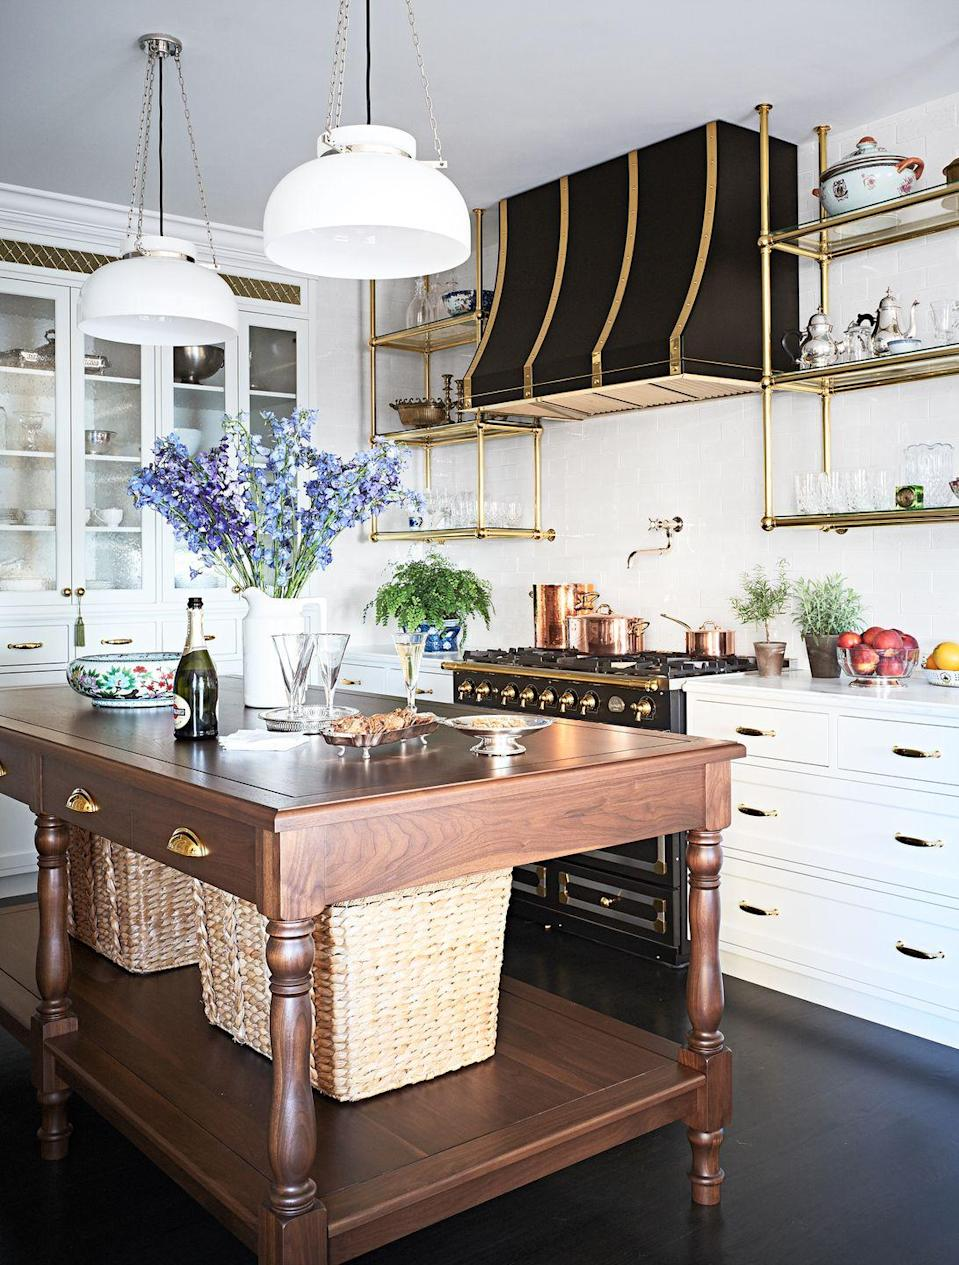 "<p>We imagine some Michelin star-status croissants coming out of a kitchen this beautiful designed by <a href=""https://www.housebeautiful.com/design-inspiration/house-tours/a25647684/summer-thornton-chicago-apartment-tour-transformation/"" rel=""nofollow noopener"" target=""_blank"" data-ylk=""slk:Summer Thornton"" class=""link rapid-noclick-resp"">Summer Thornton</a>. With a gorgeous black and gold hood, gold floating shelves, and a lovely wood kitchen island, it's the perfect blend of French country chic and unpretentious, modern style. </p>"